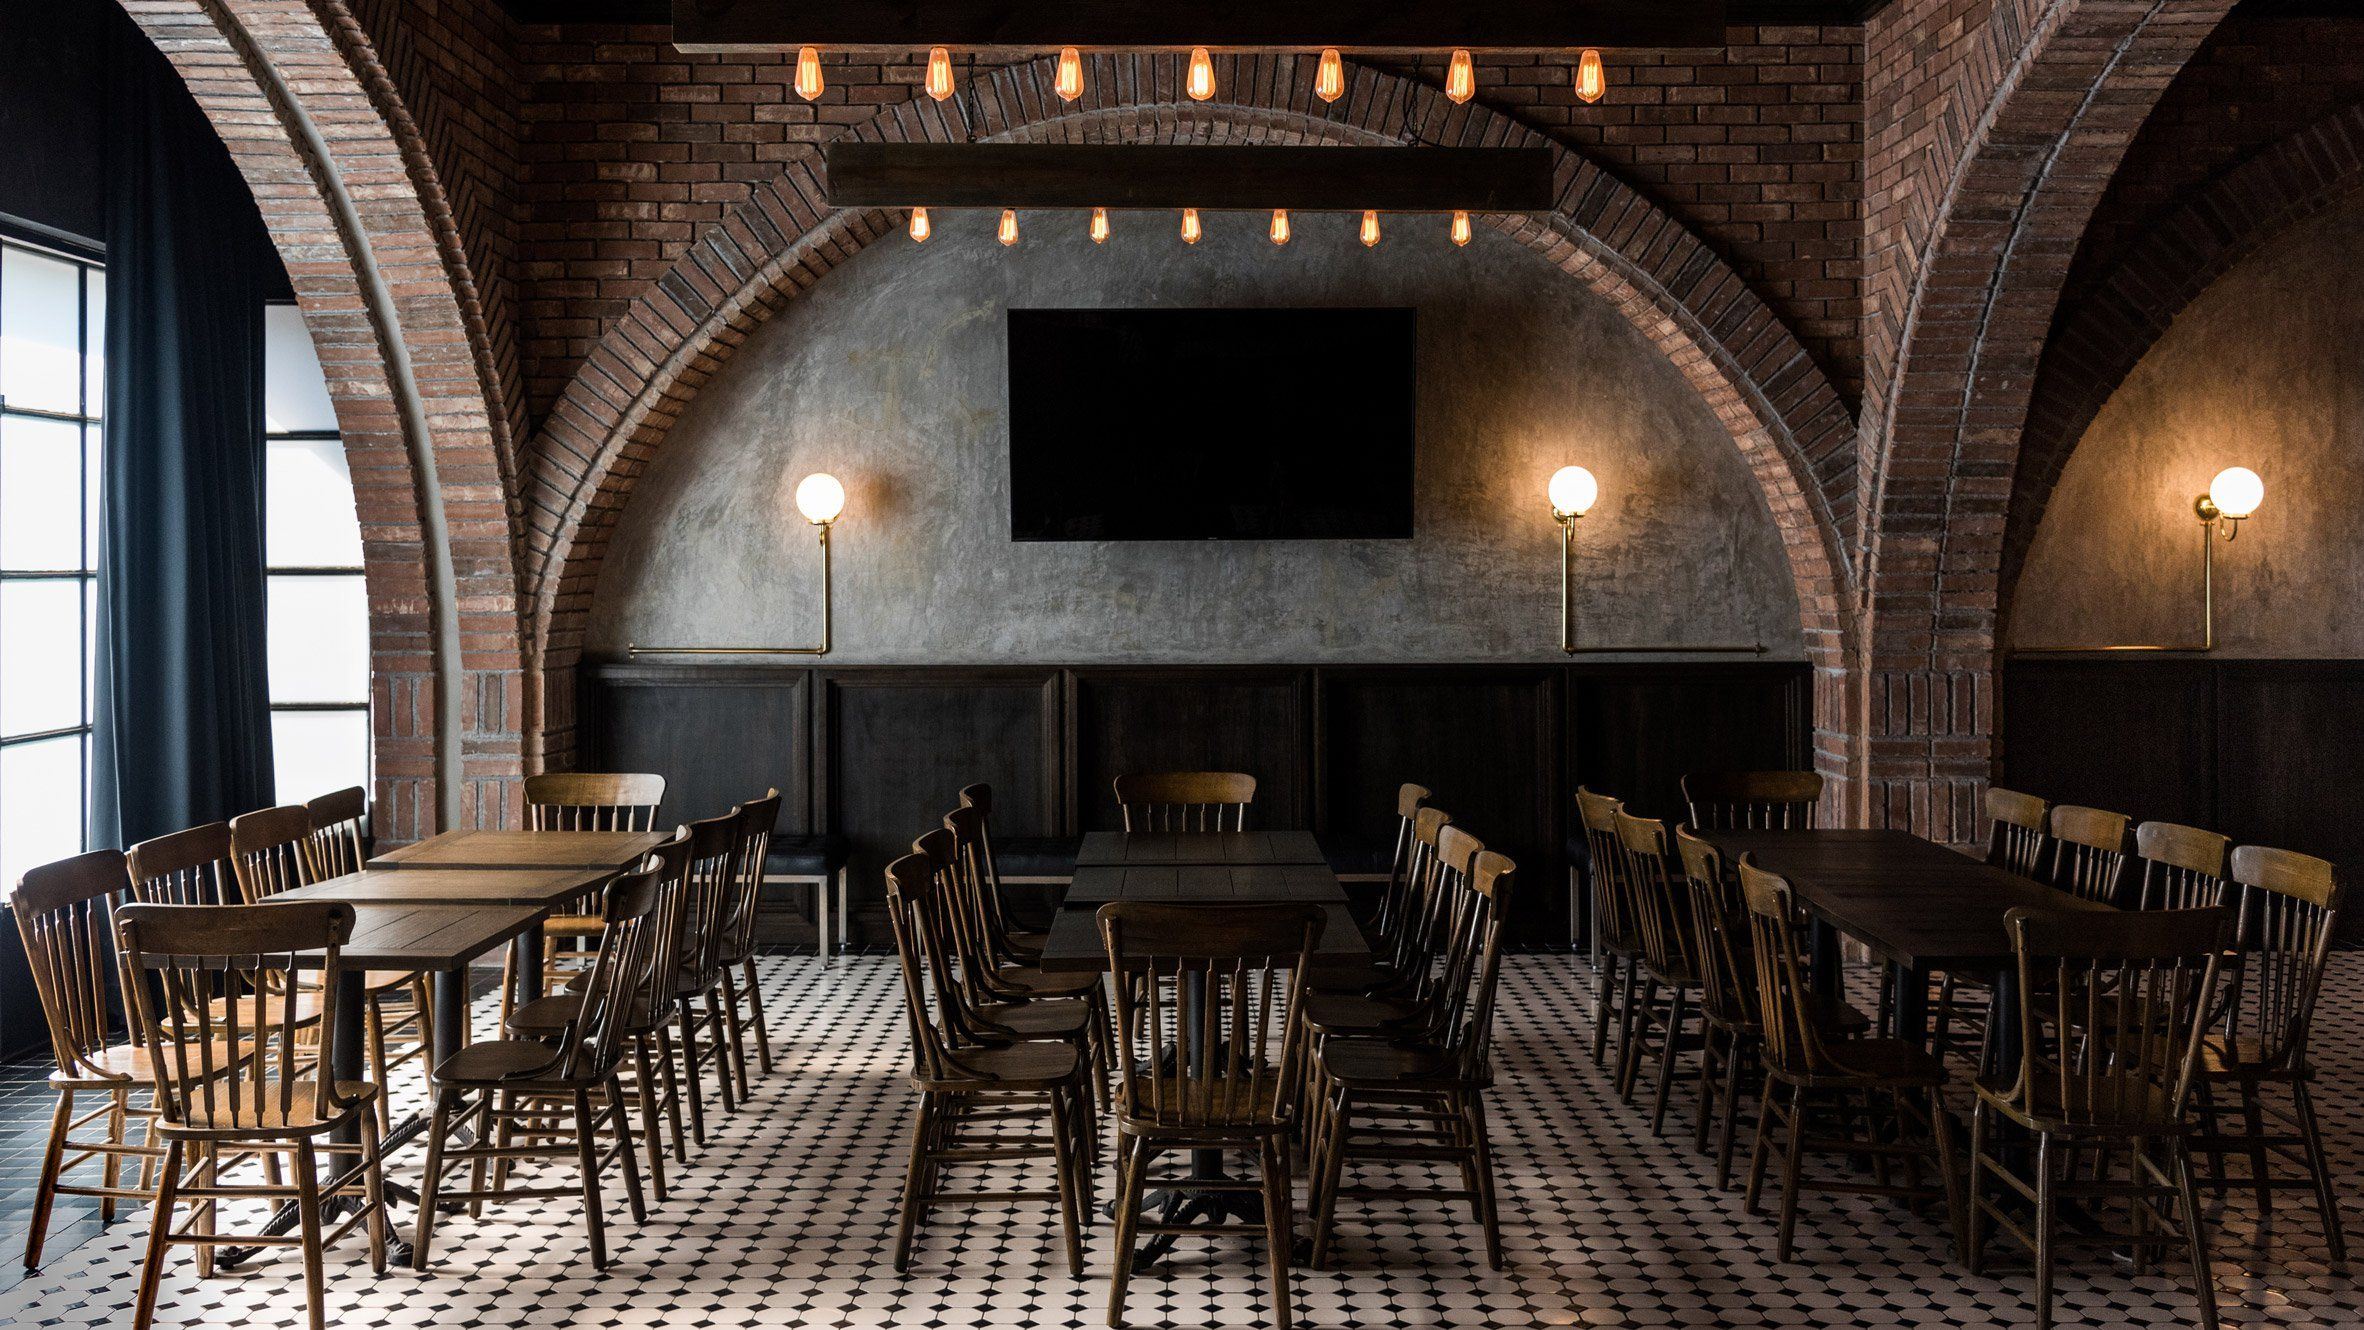 Black and white tiles brick arches wooden furniture